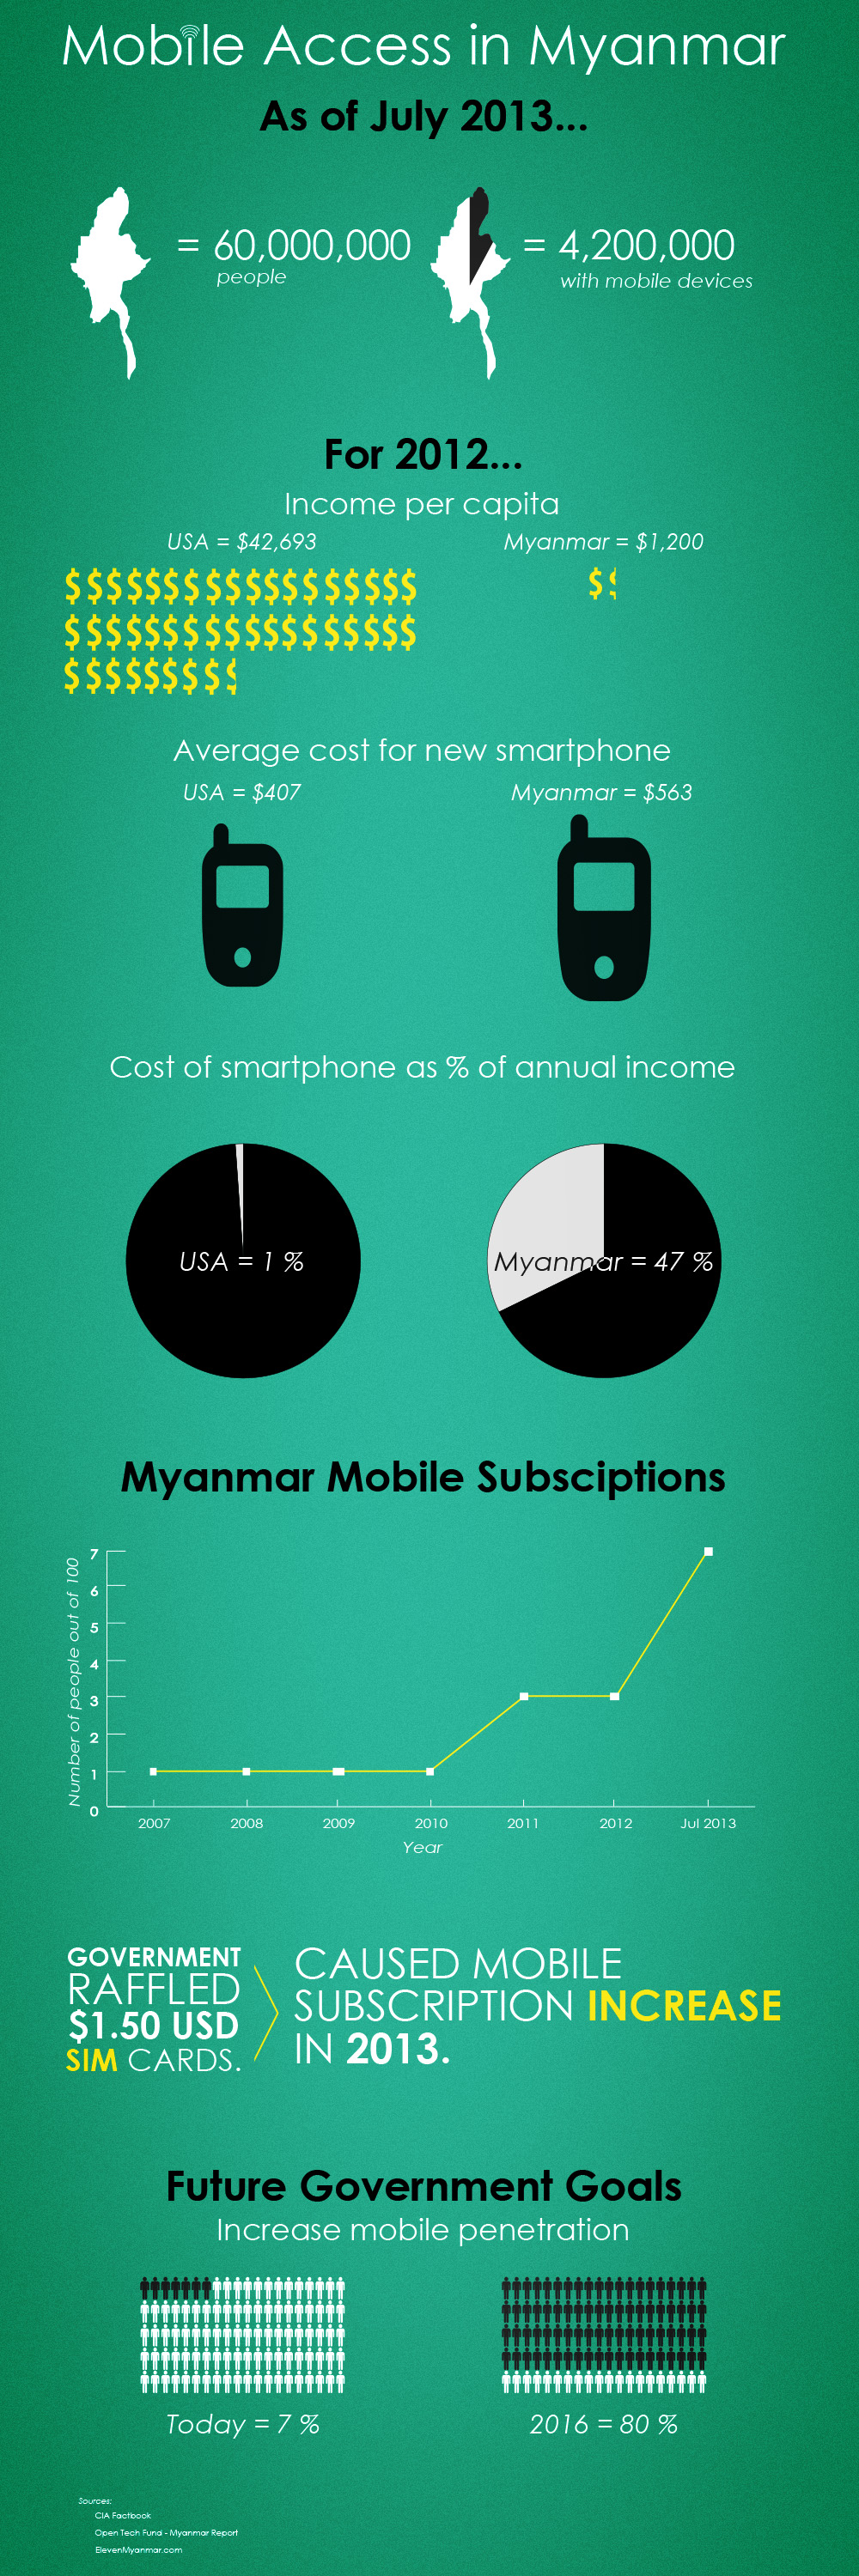 Mobile Usage in Myanmar: INFOGRAPHIC